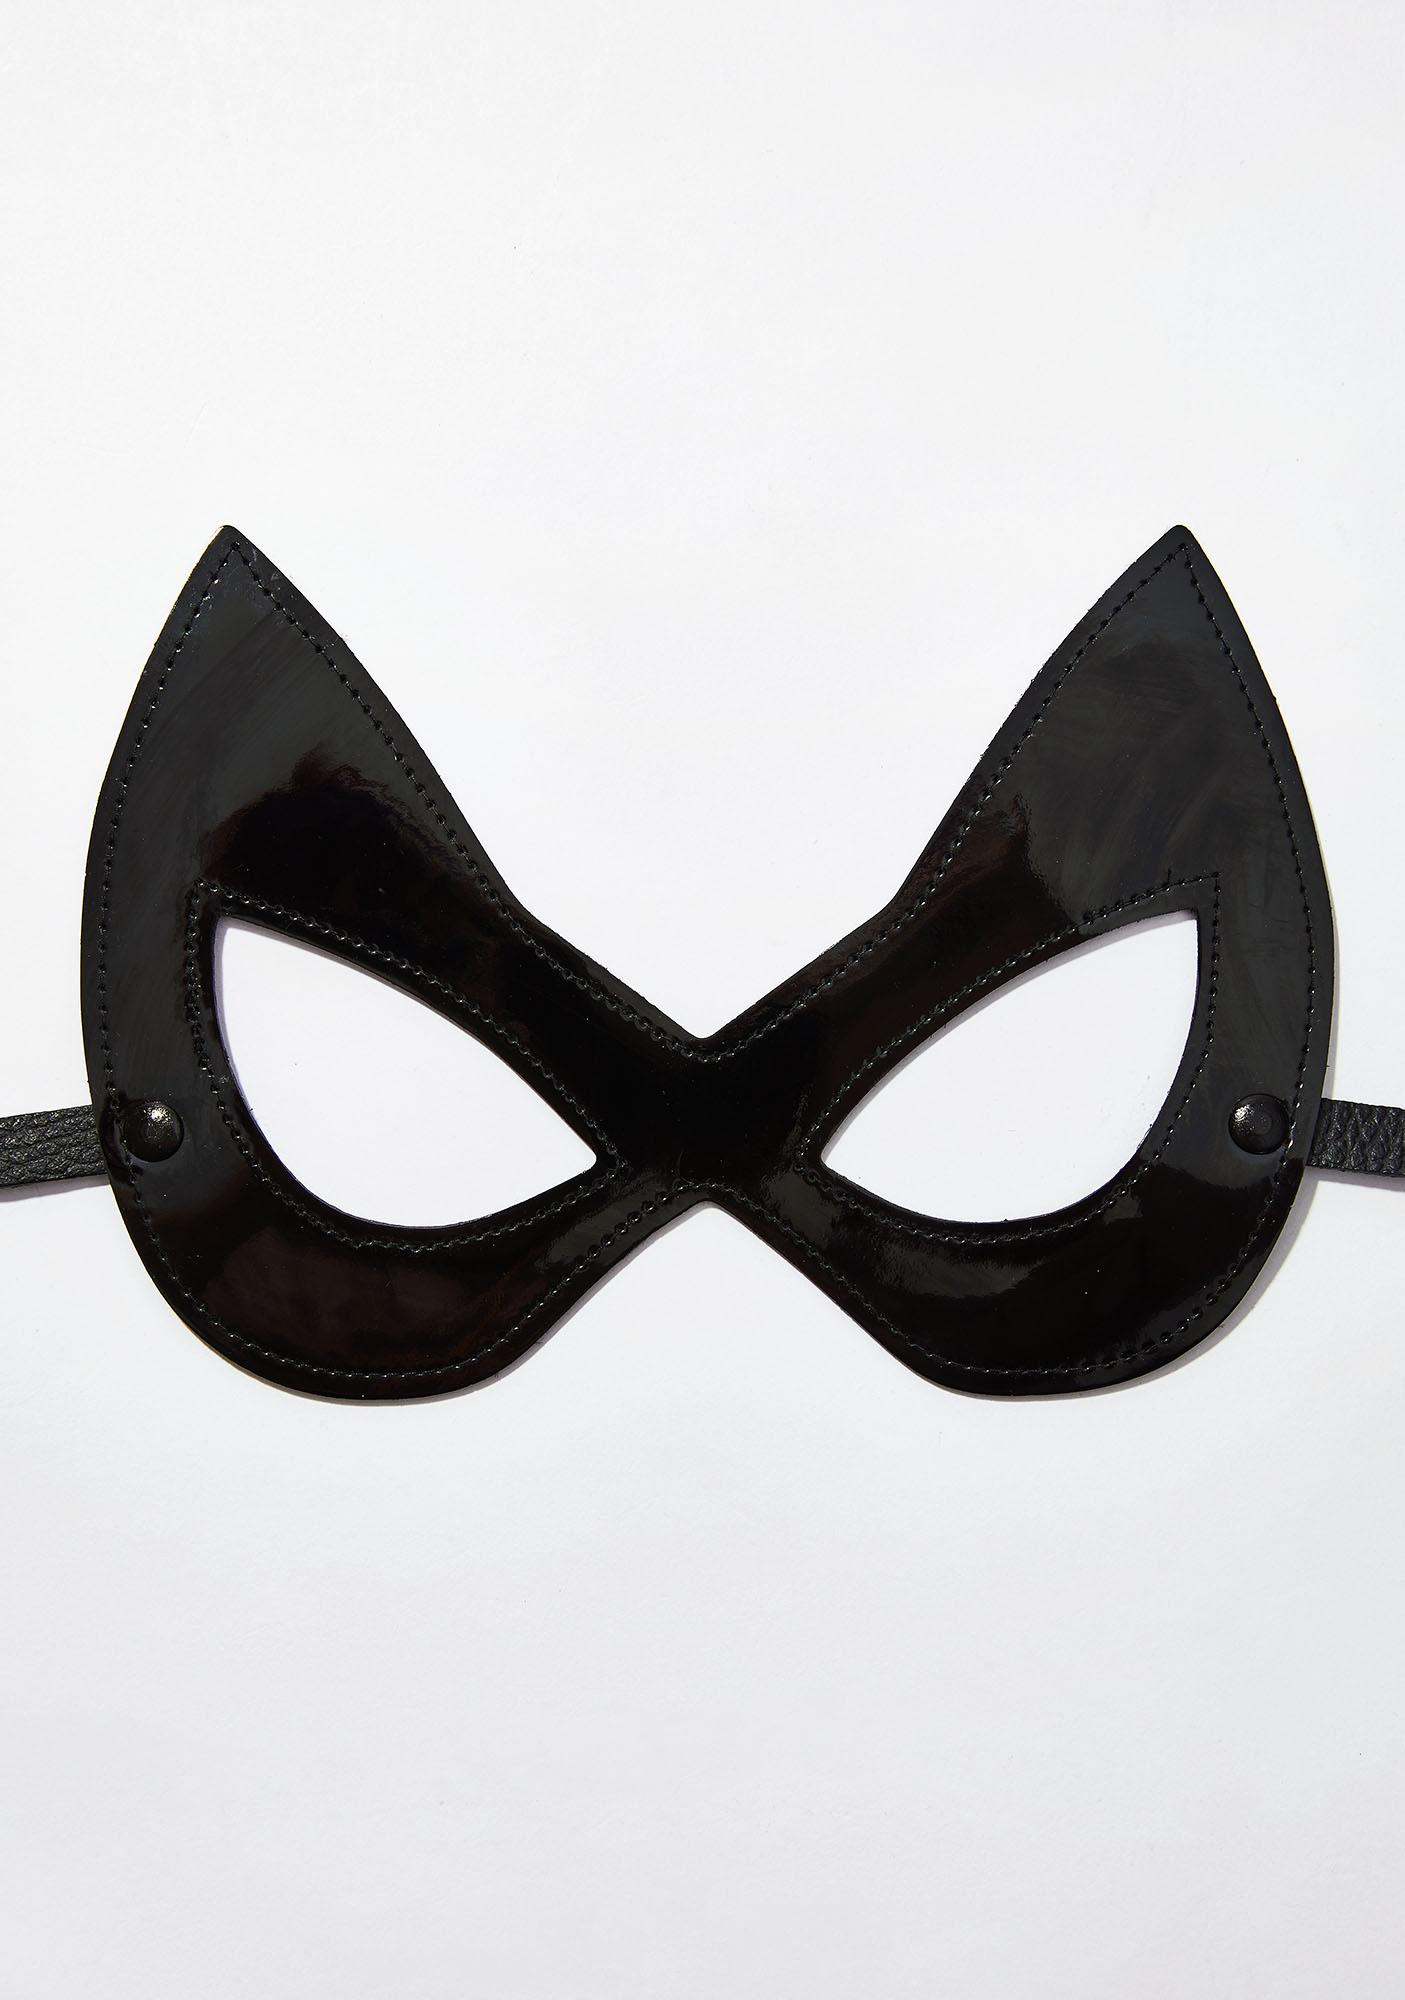 All Nine Lives Mask